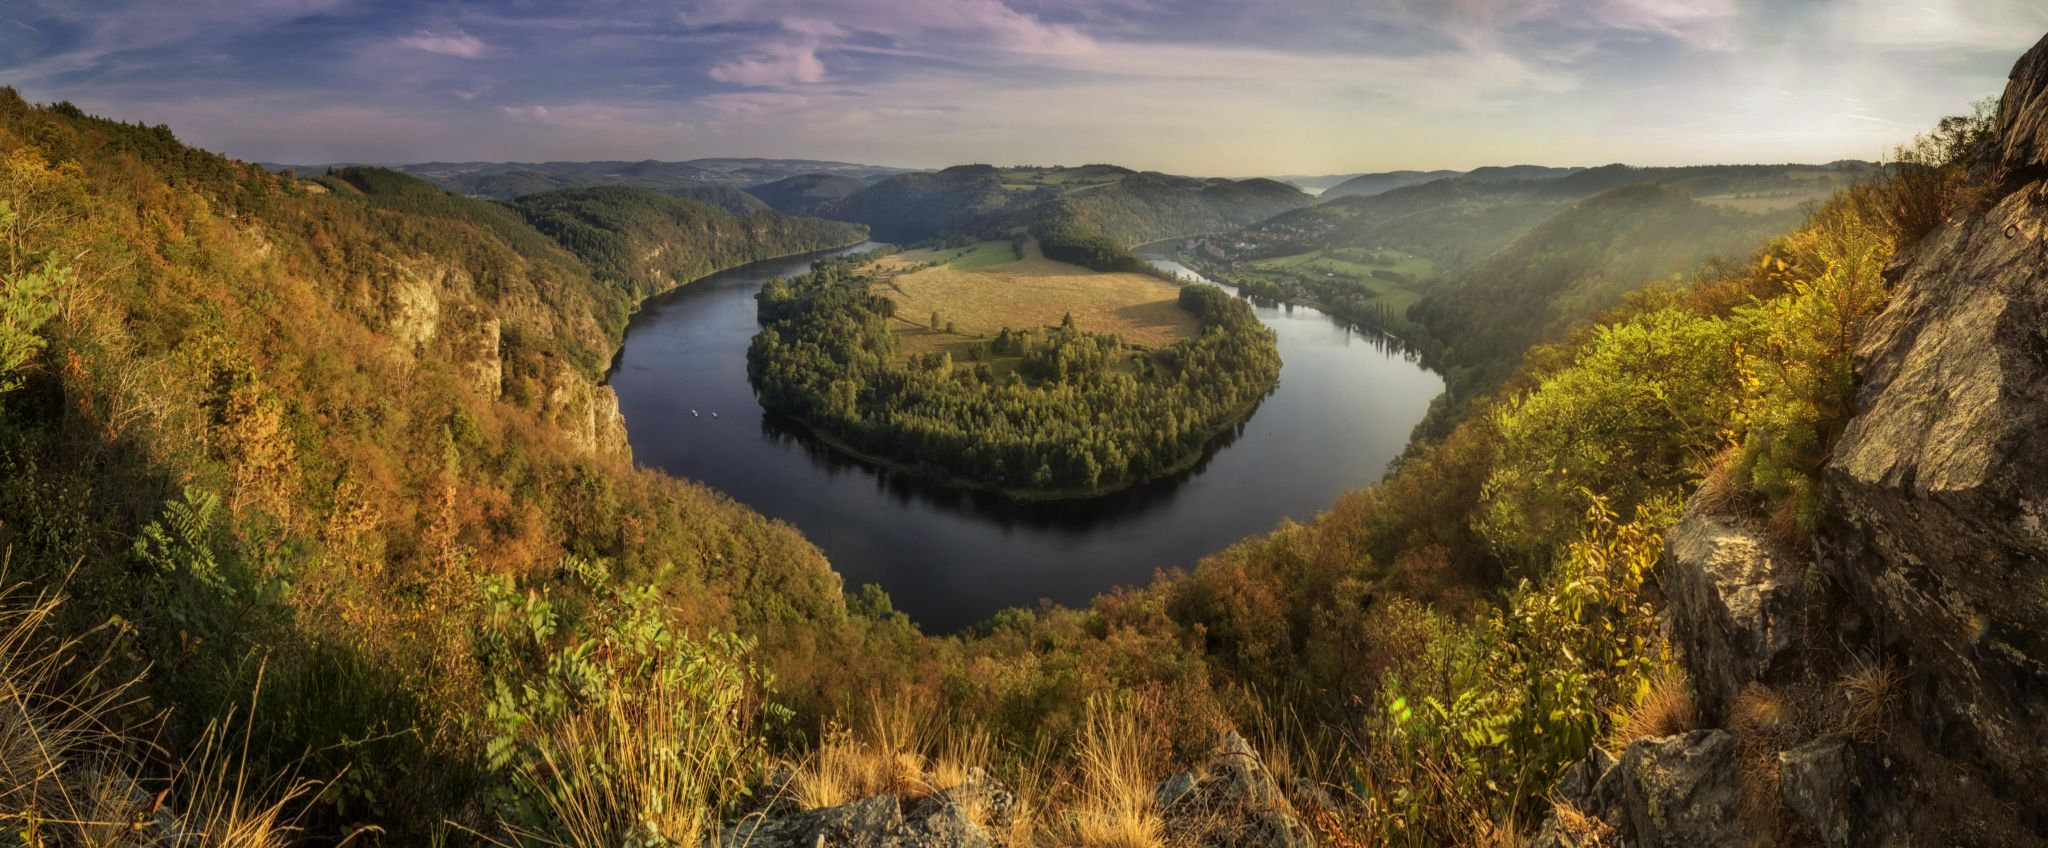 Solenice horseshoe, Czech Republic